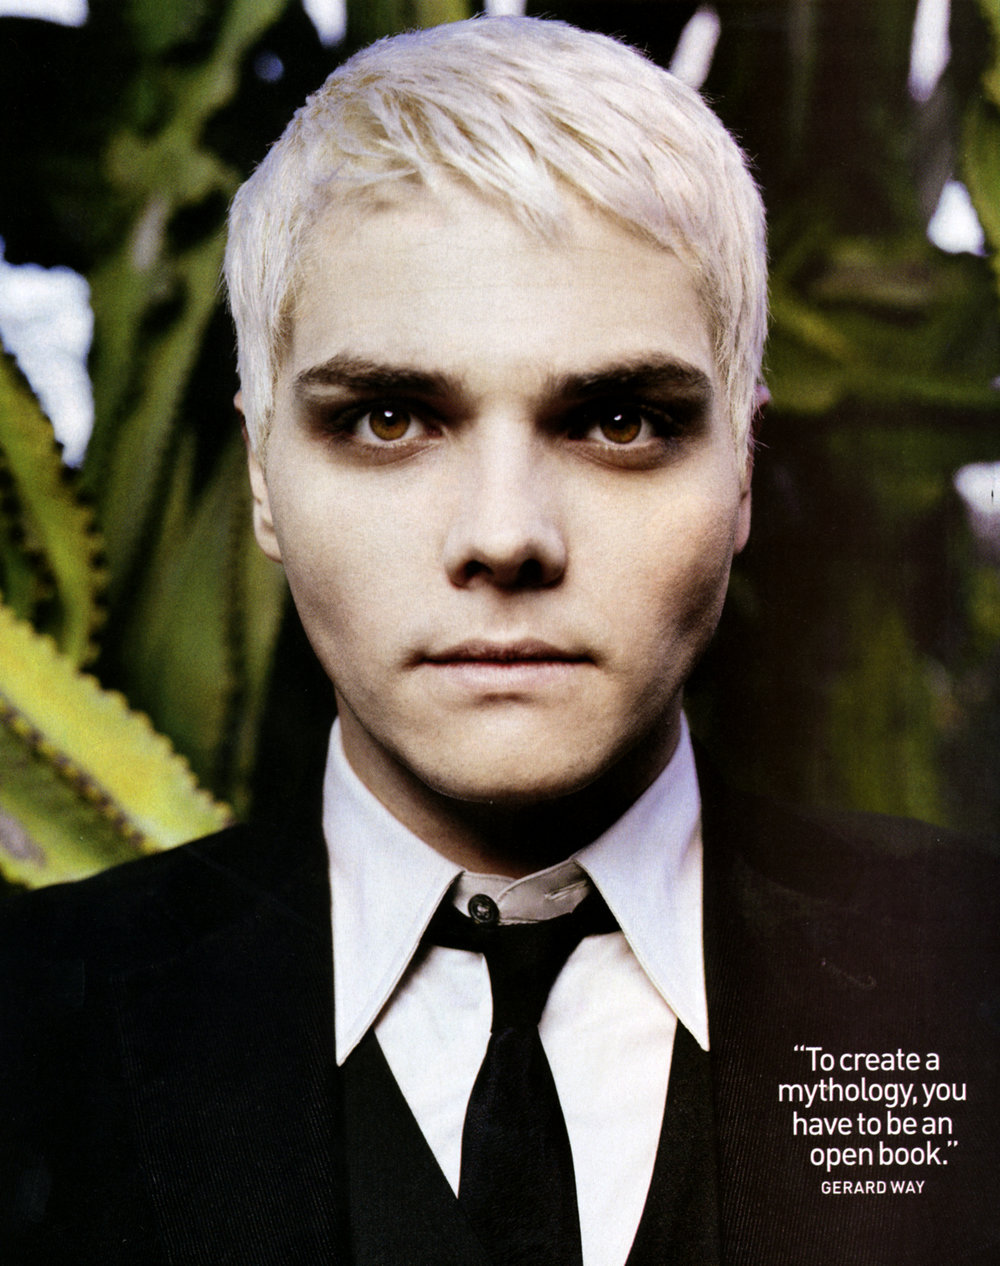 Gerard Way: Spin Cover & Editorial